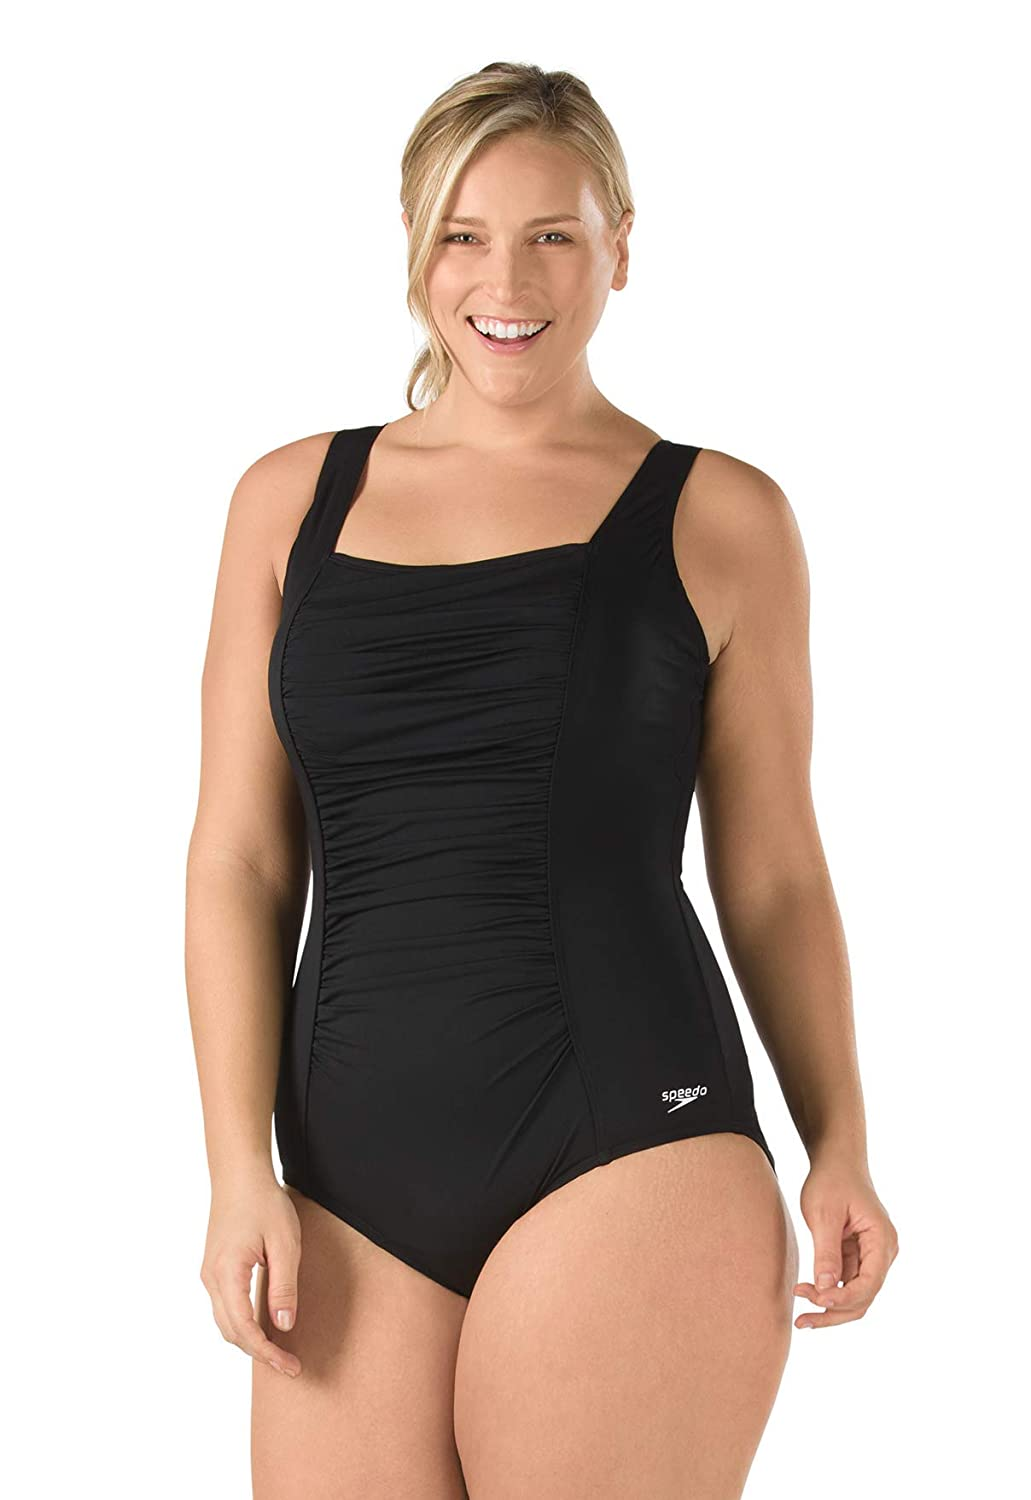 Speedo Womens One Piece Swimsuit-Shirred Tank Moderate Cut, High Bra Support